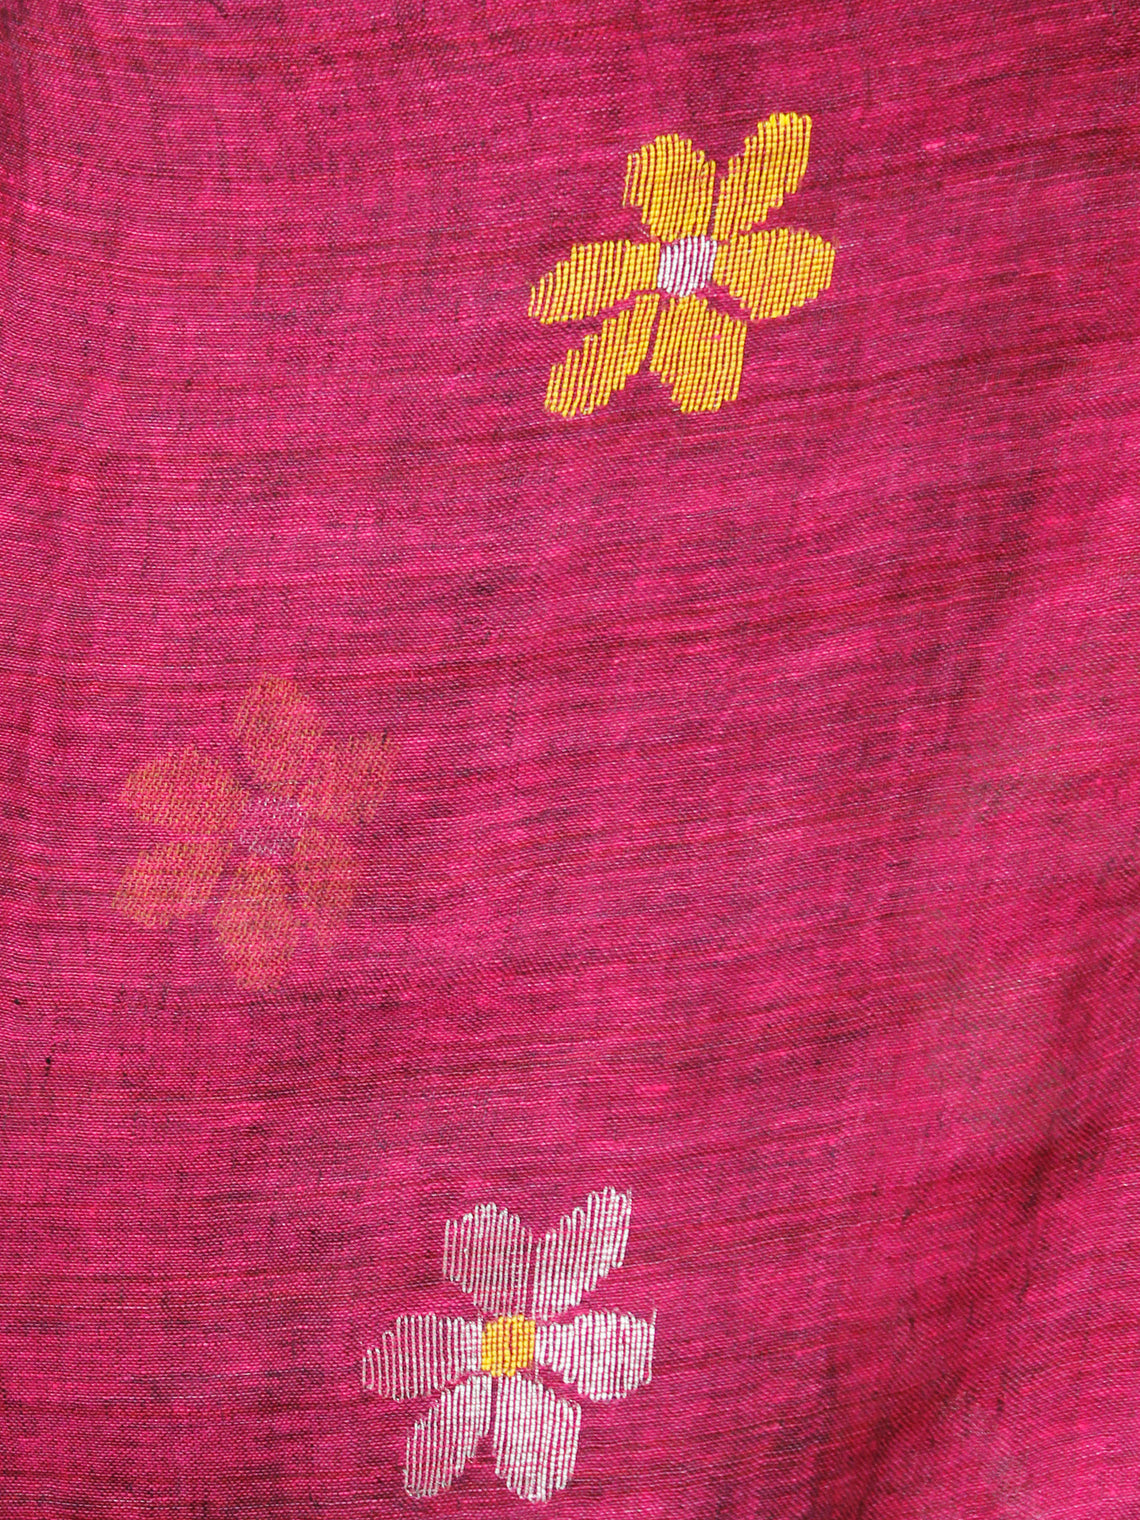 Pink Linen Handloom Jamdani Saree With Zari Border - S031703441